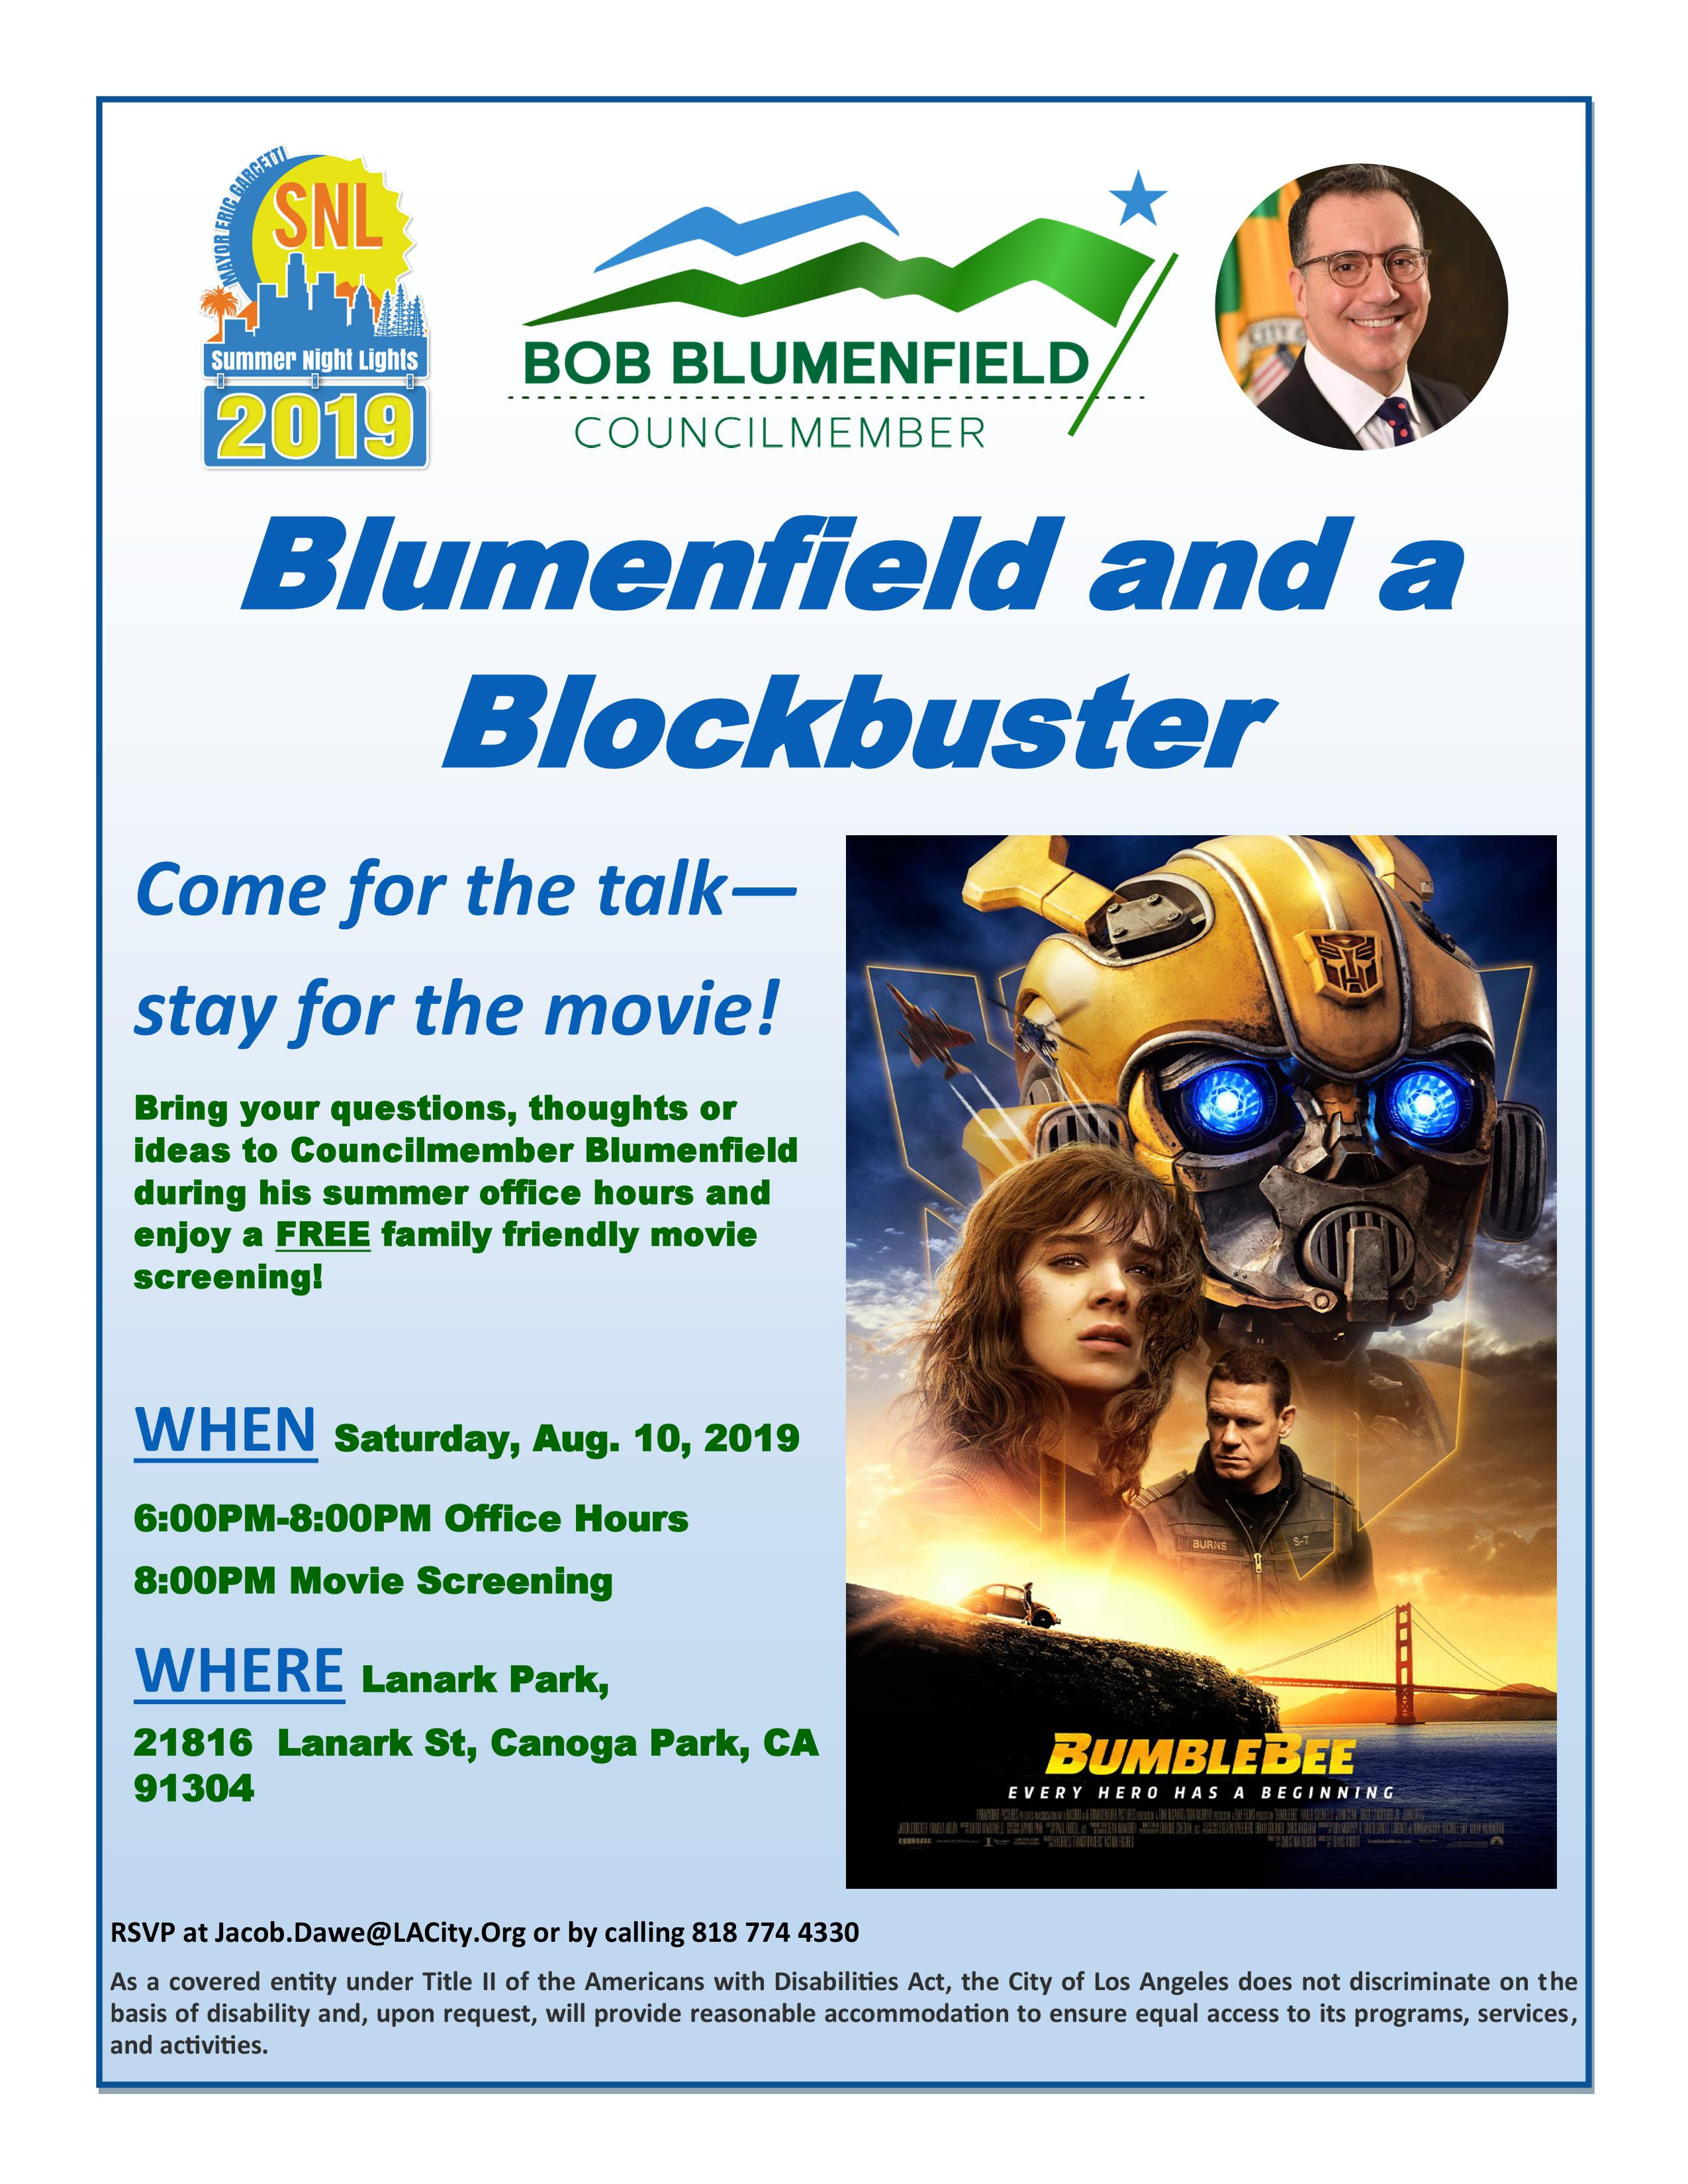 Movie_Screening_Bumblebee_1.jpg